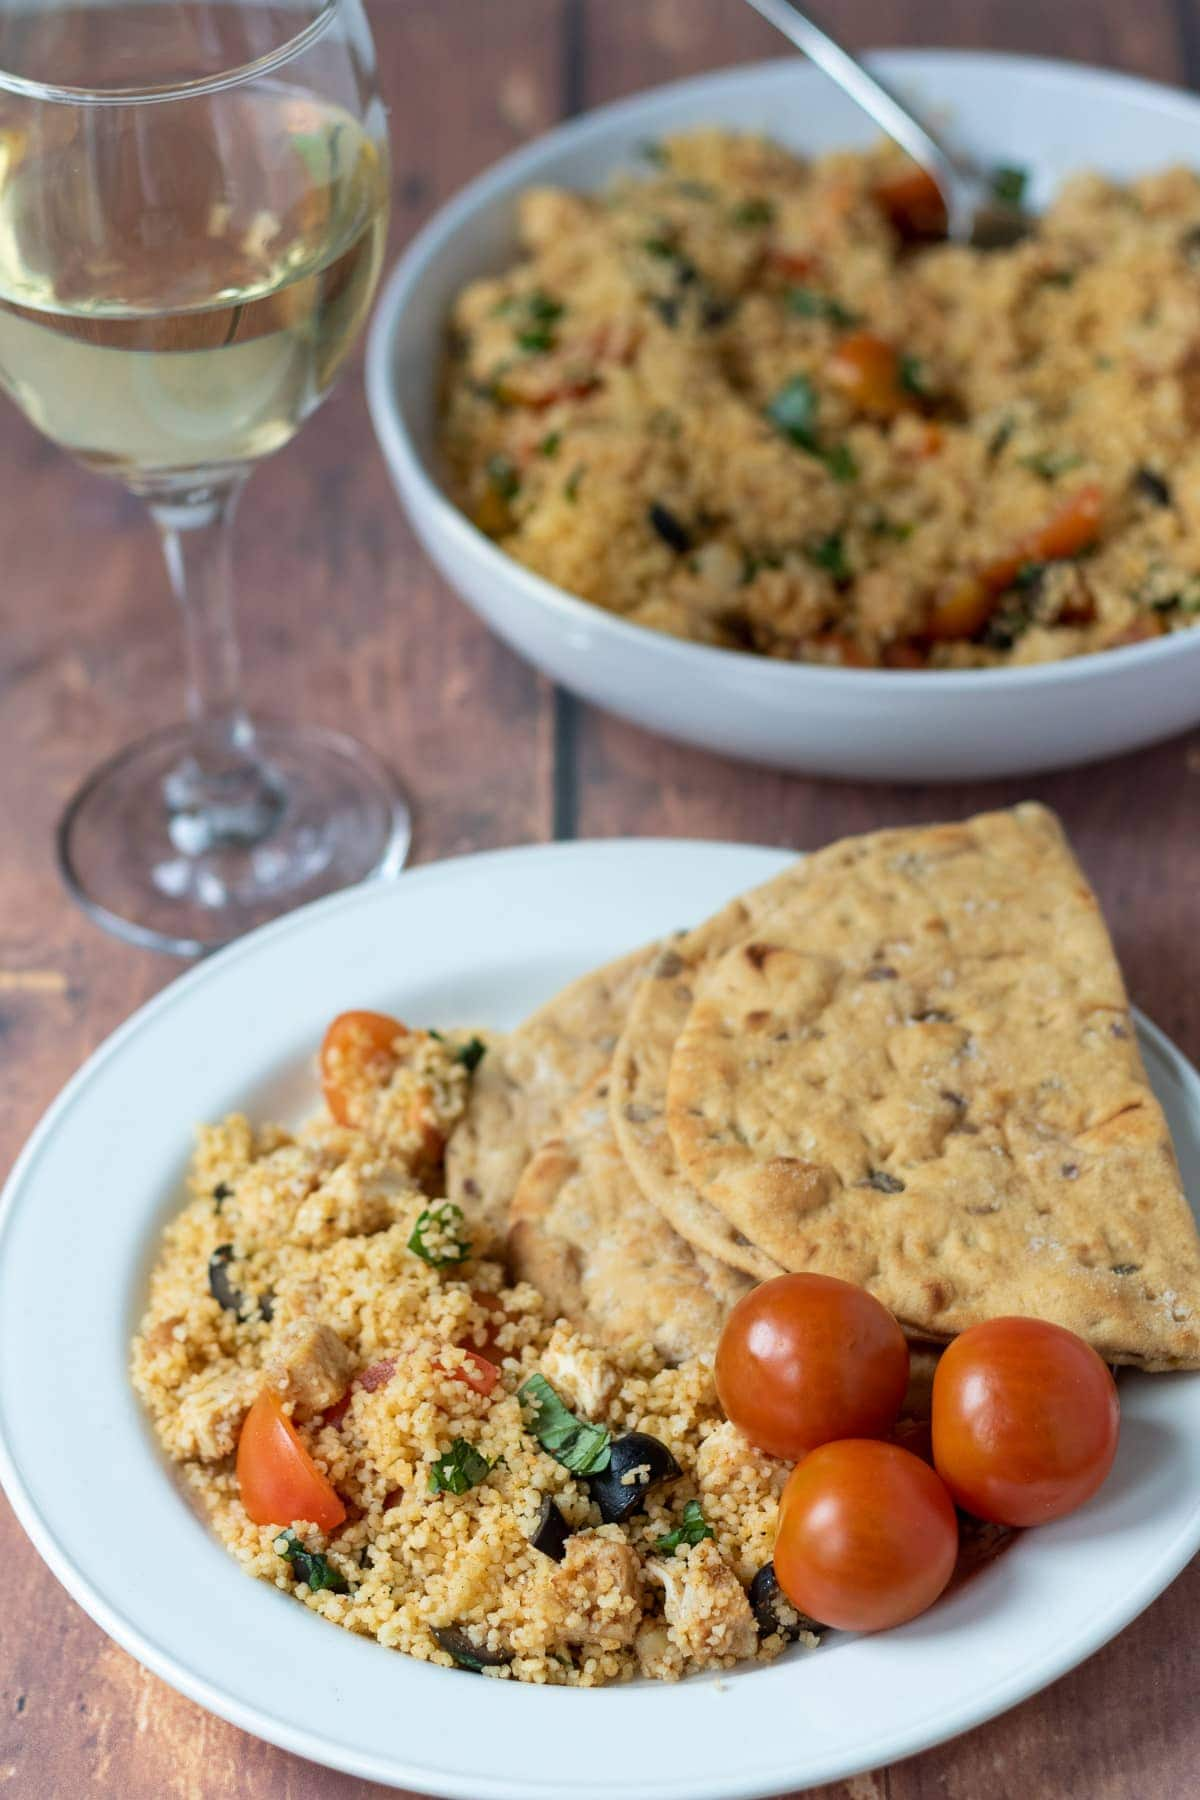 A plate of couscous chicken salad served with cherry tomatoes and flat bread. Serving bowl and glass of wine in the background.